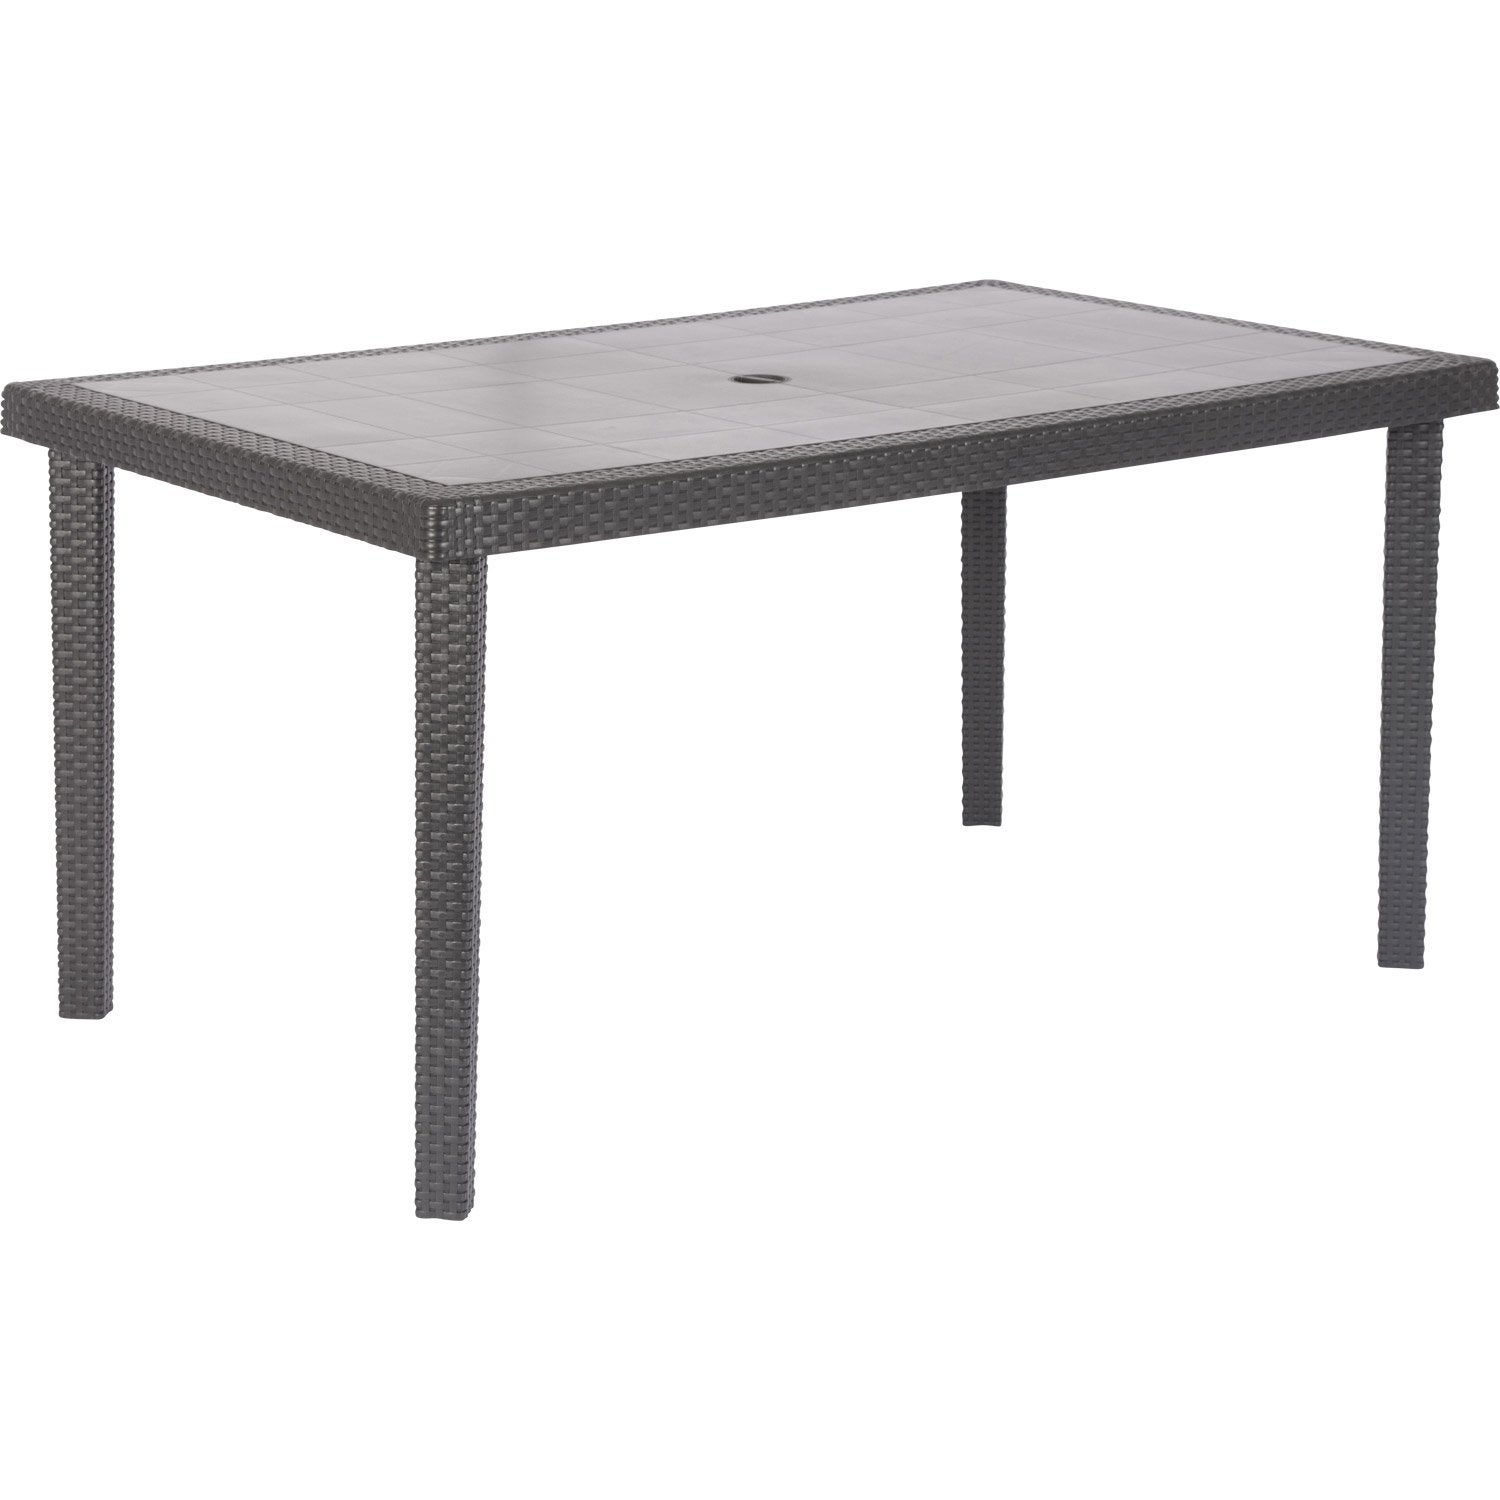 Table de jardin boh me rectangulaire anthracite 6 for Table extensible leroy merlin